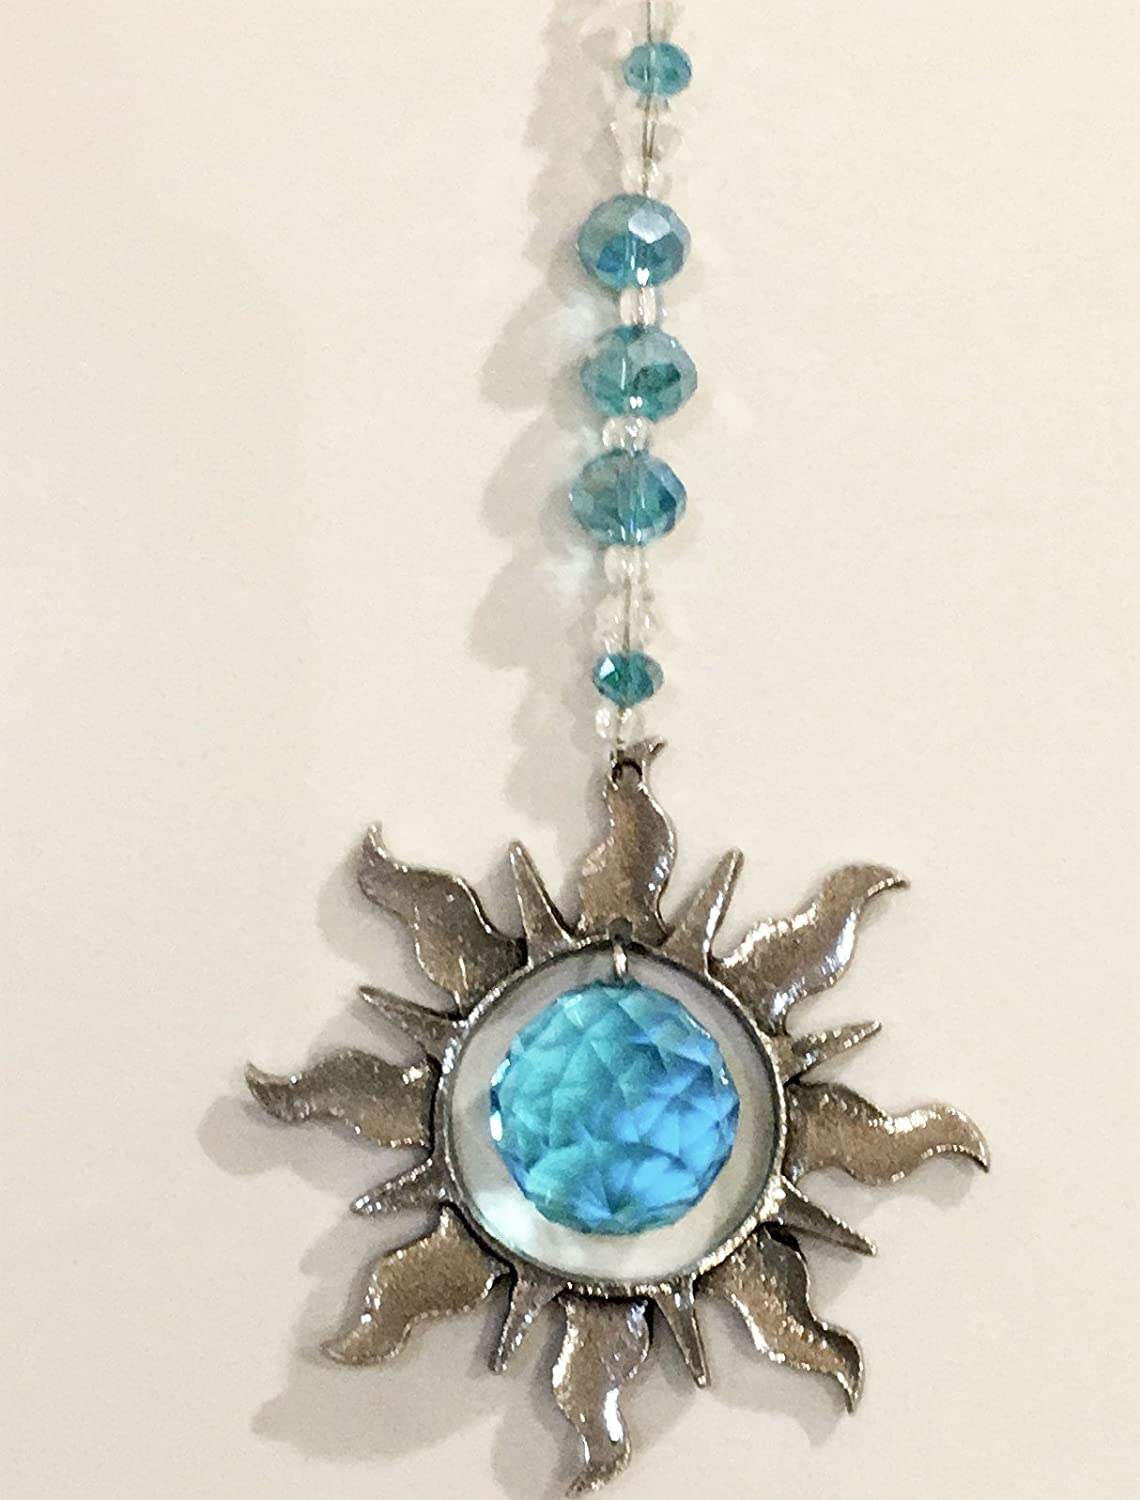 Rear View Mirror Turquoise Crystal Car Charm Sun Catchers, Pewter Sun Window Sun Catcher with Turquoise Crystals, Window Ornament, Turquoise Crystal Ball Prism Suncatcher,Feng Shui Rainbow Maker